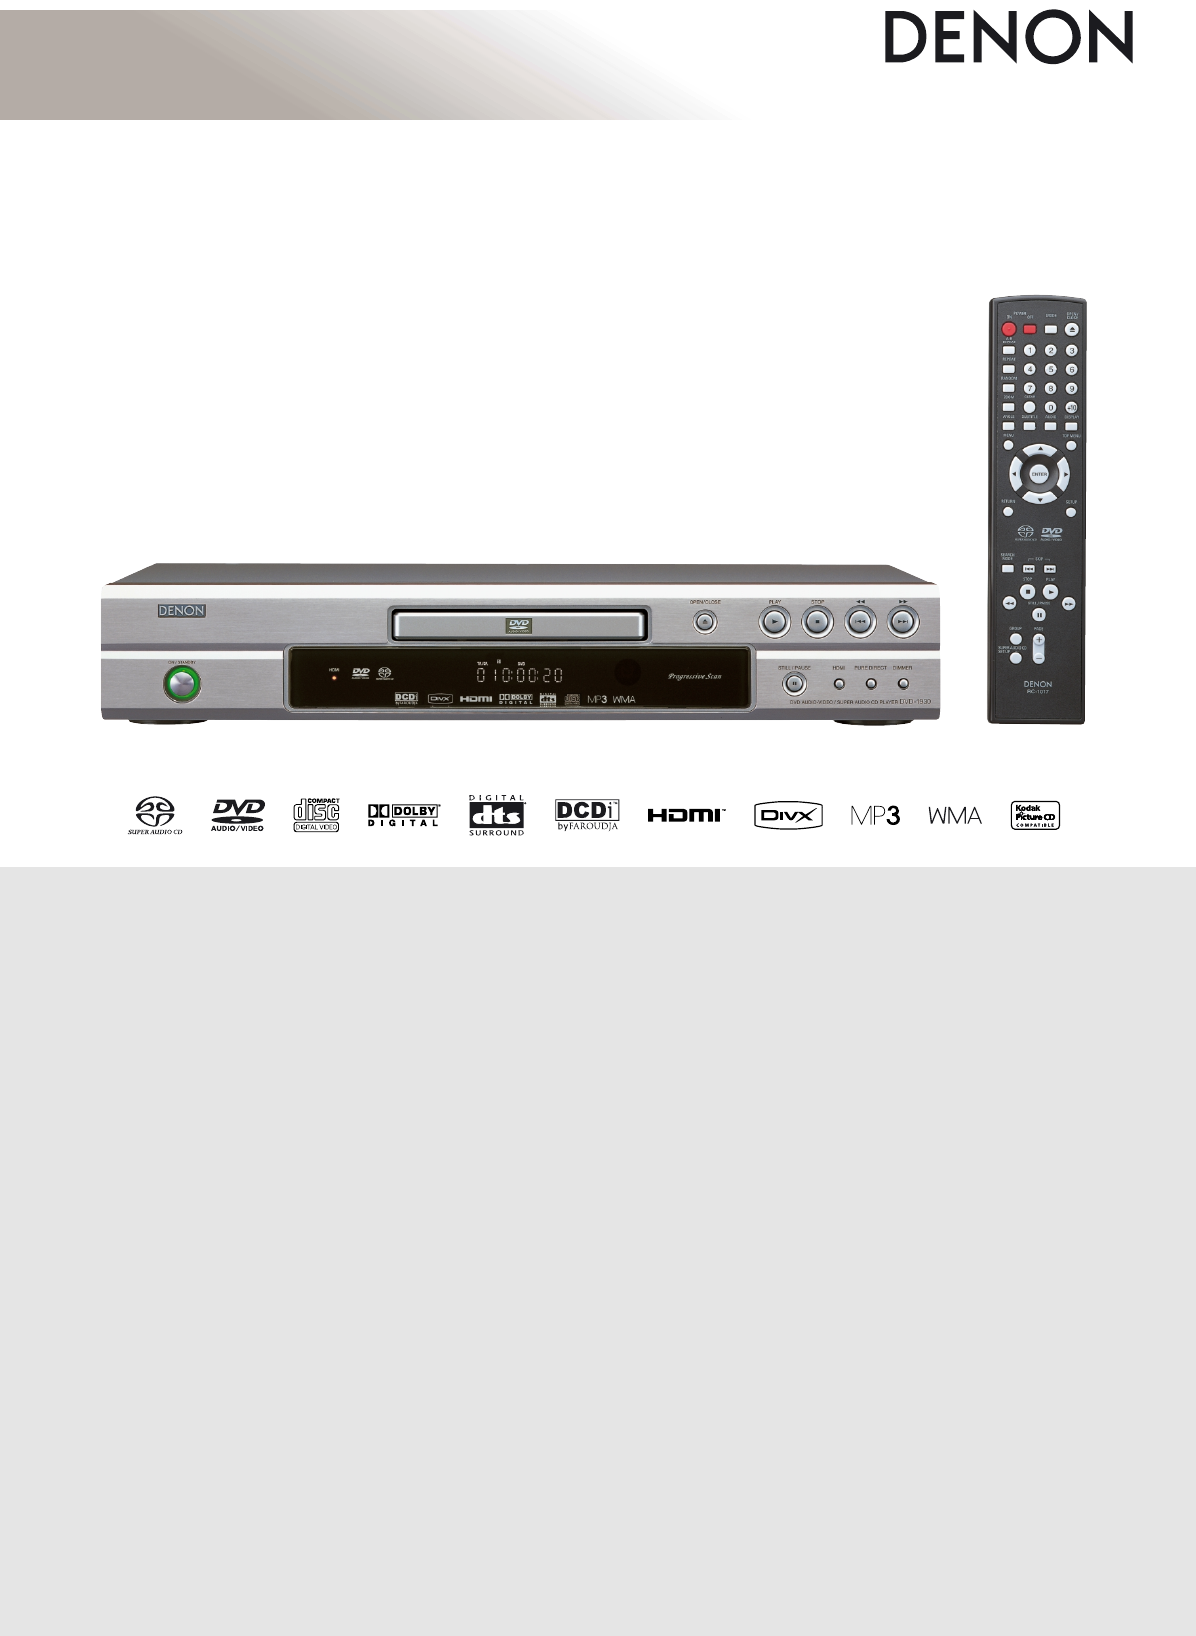 Denon DVD-1930 DVD Player User Manual